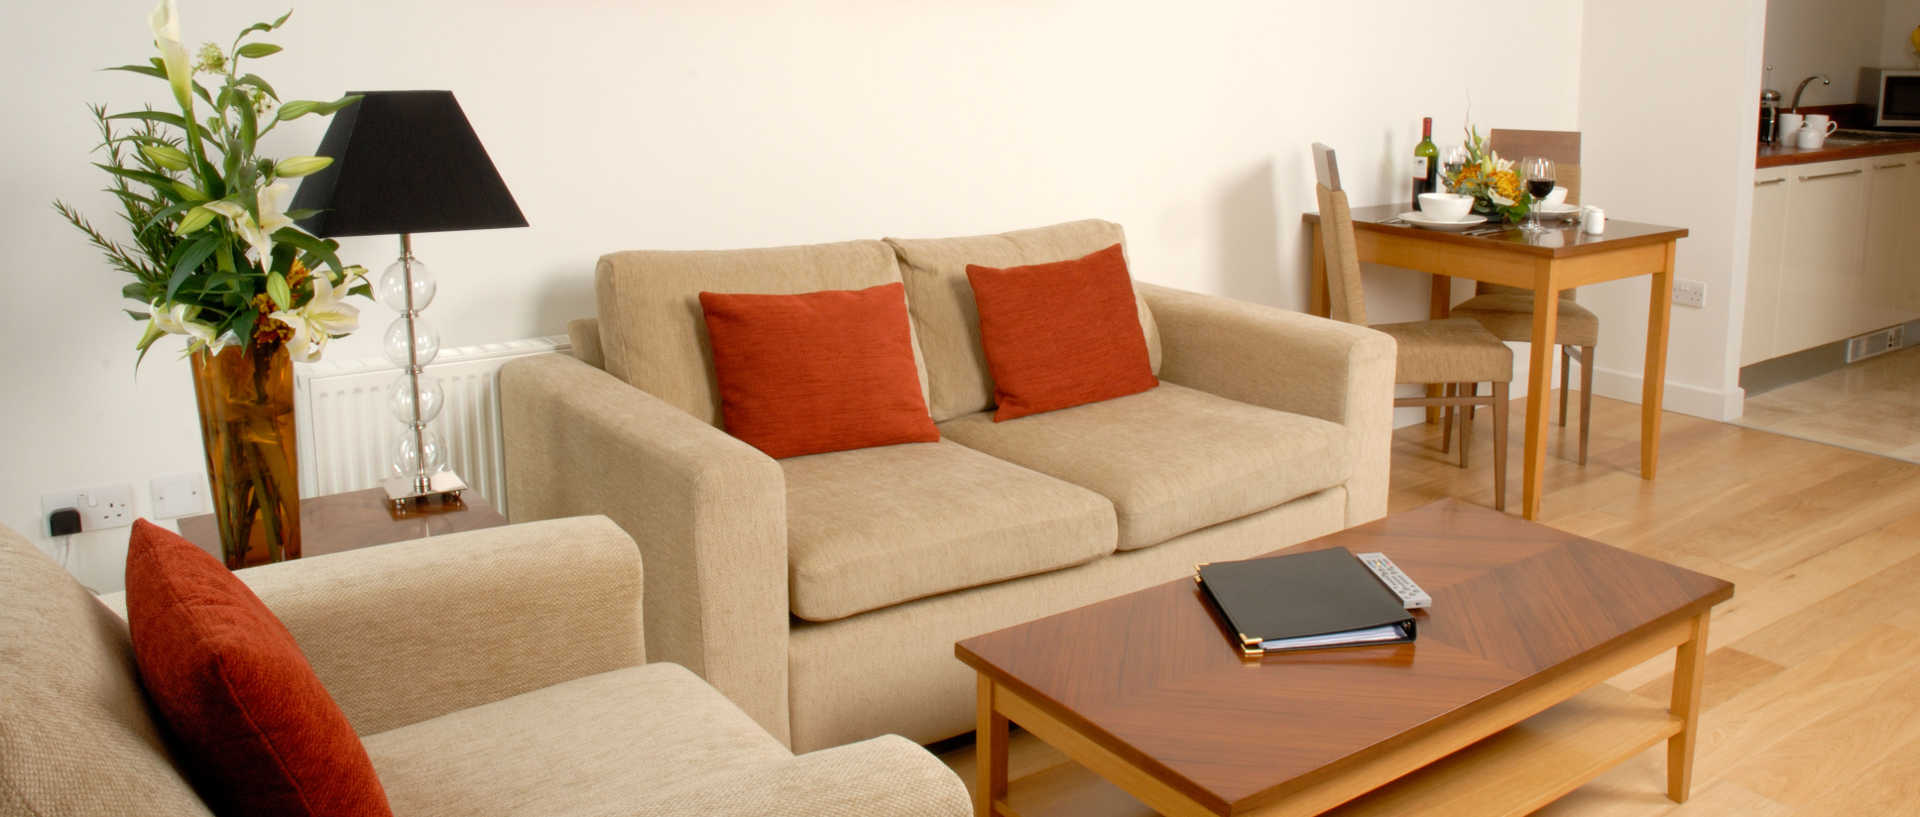 Spacious serviced apartments in Sandyford, Co. Dublin